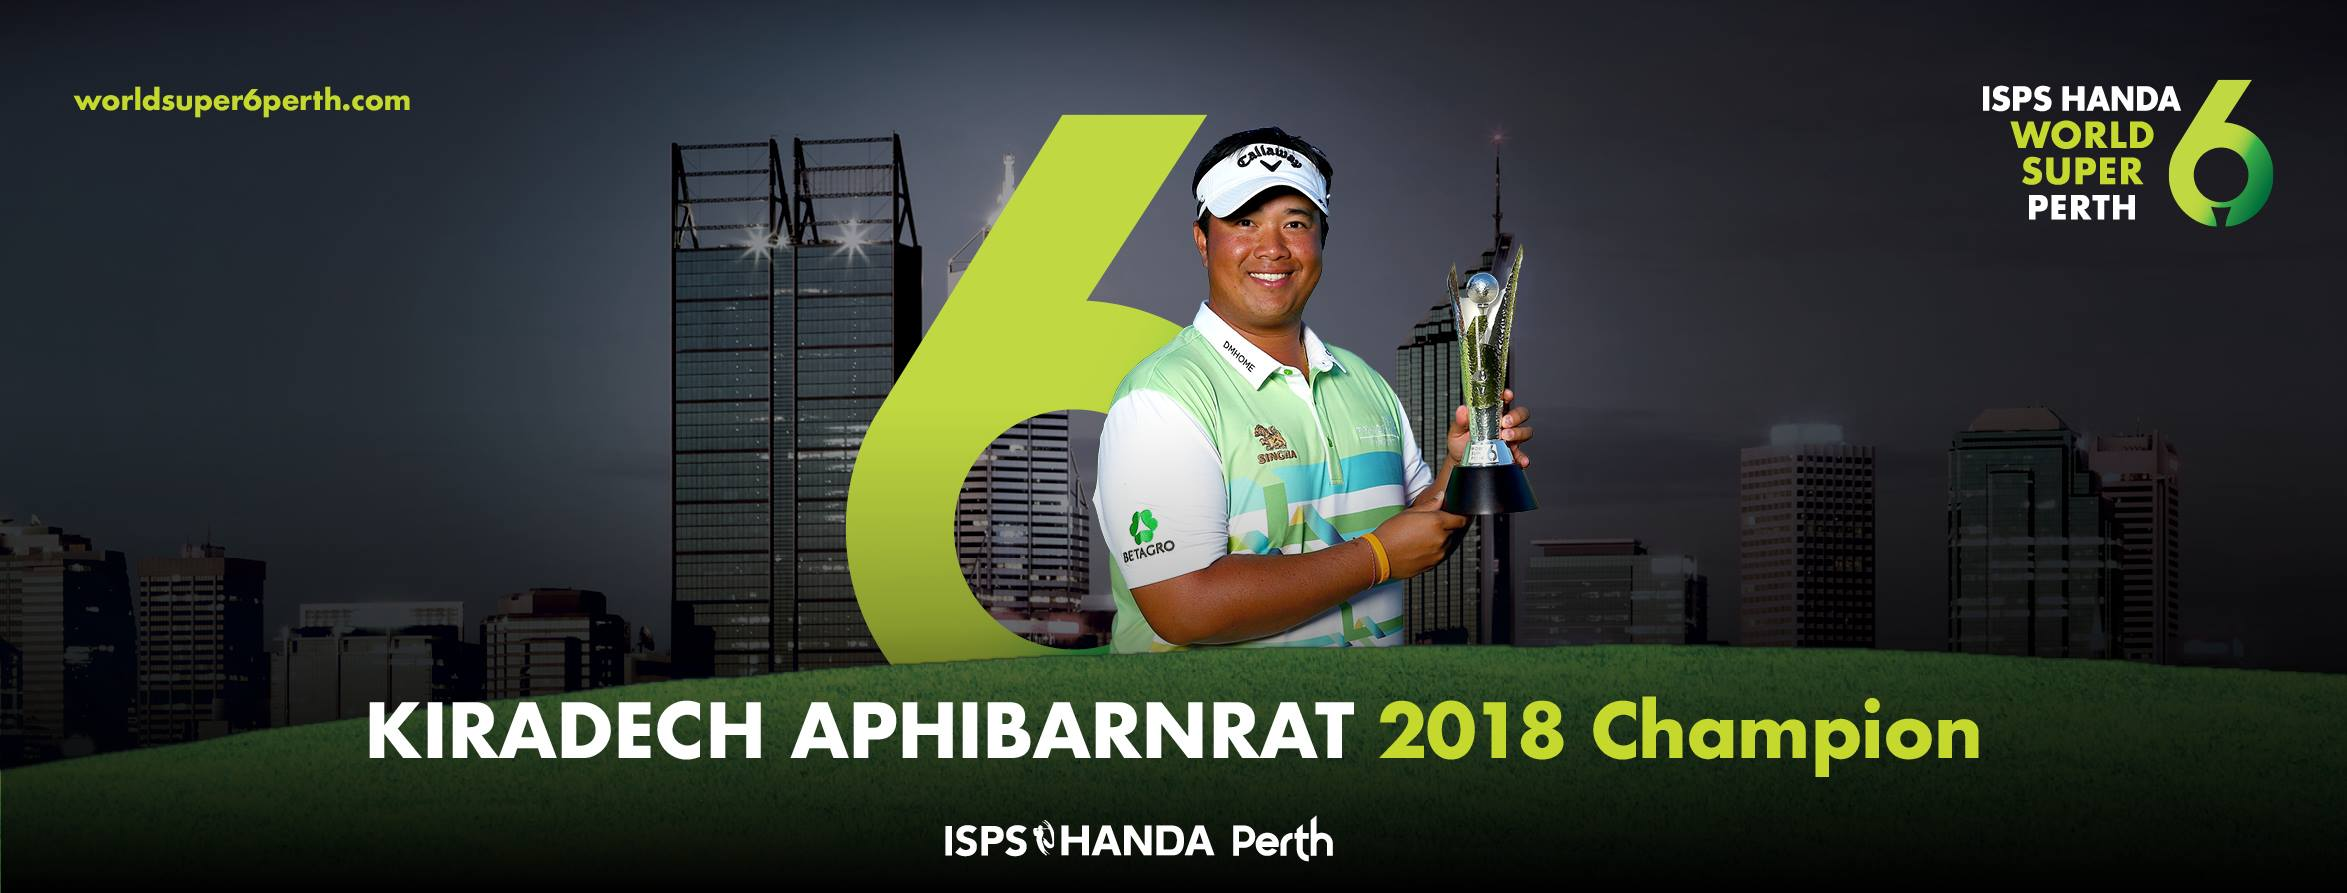 Hosting golf course for the event: ISPS Handa World Super 6 Perth